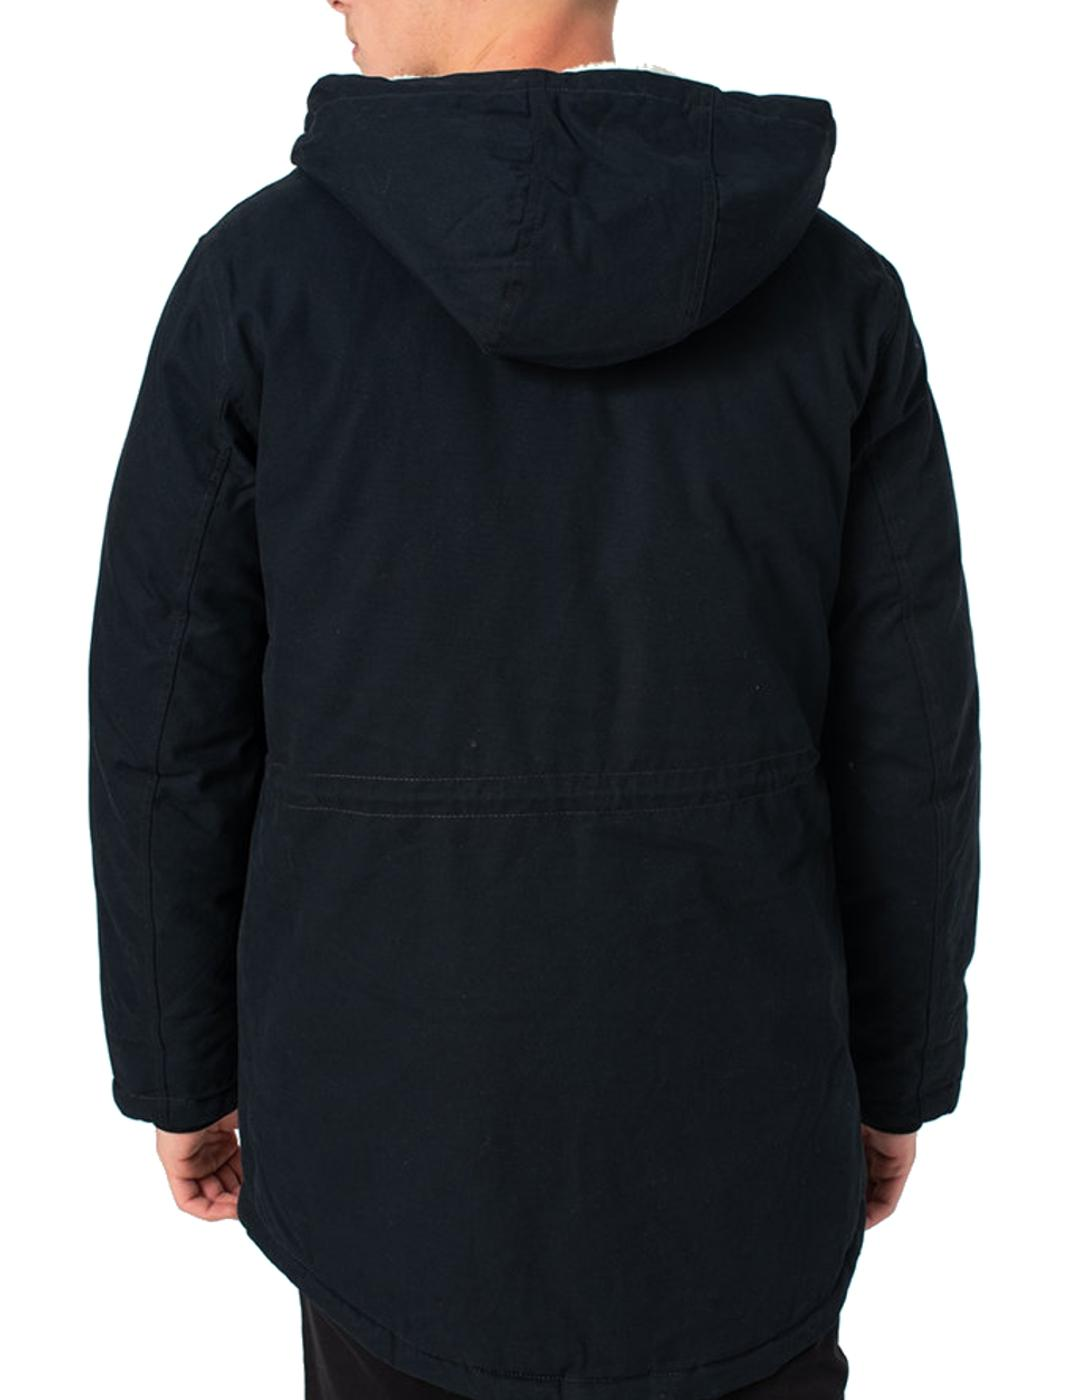 JORWALLY PARKA JACKET BLACK-X